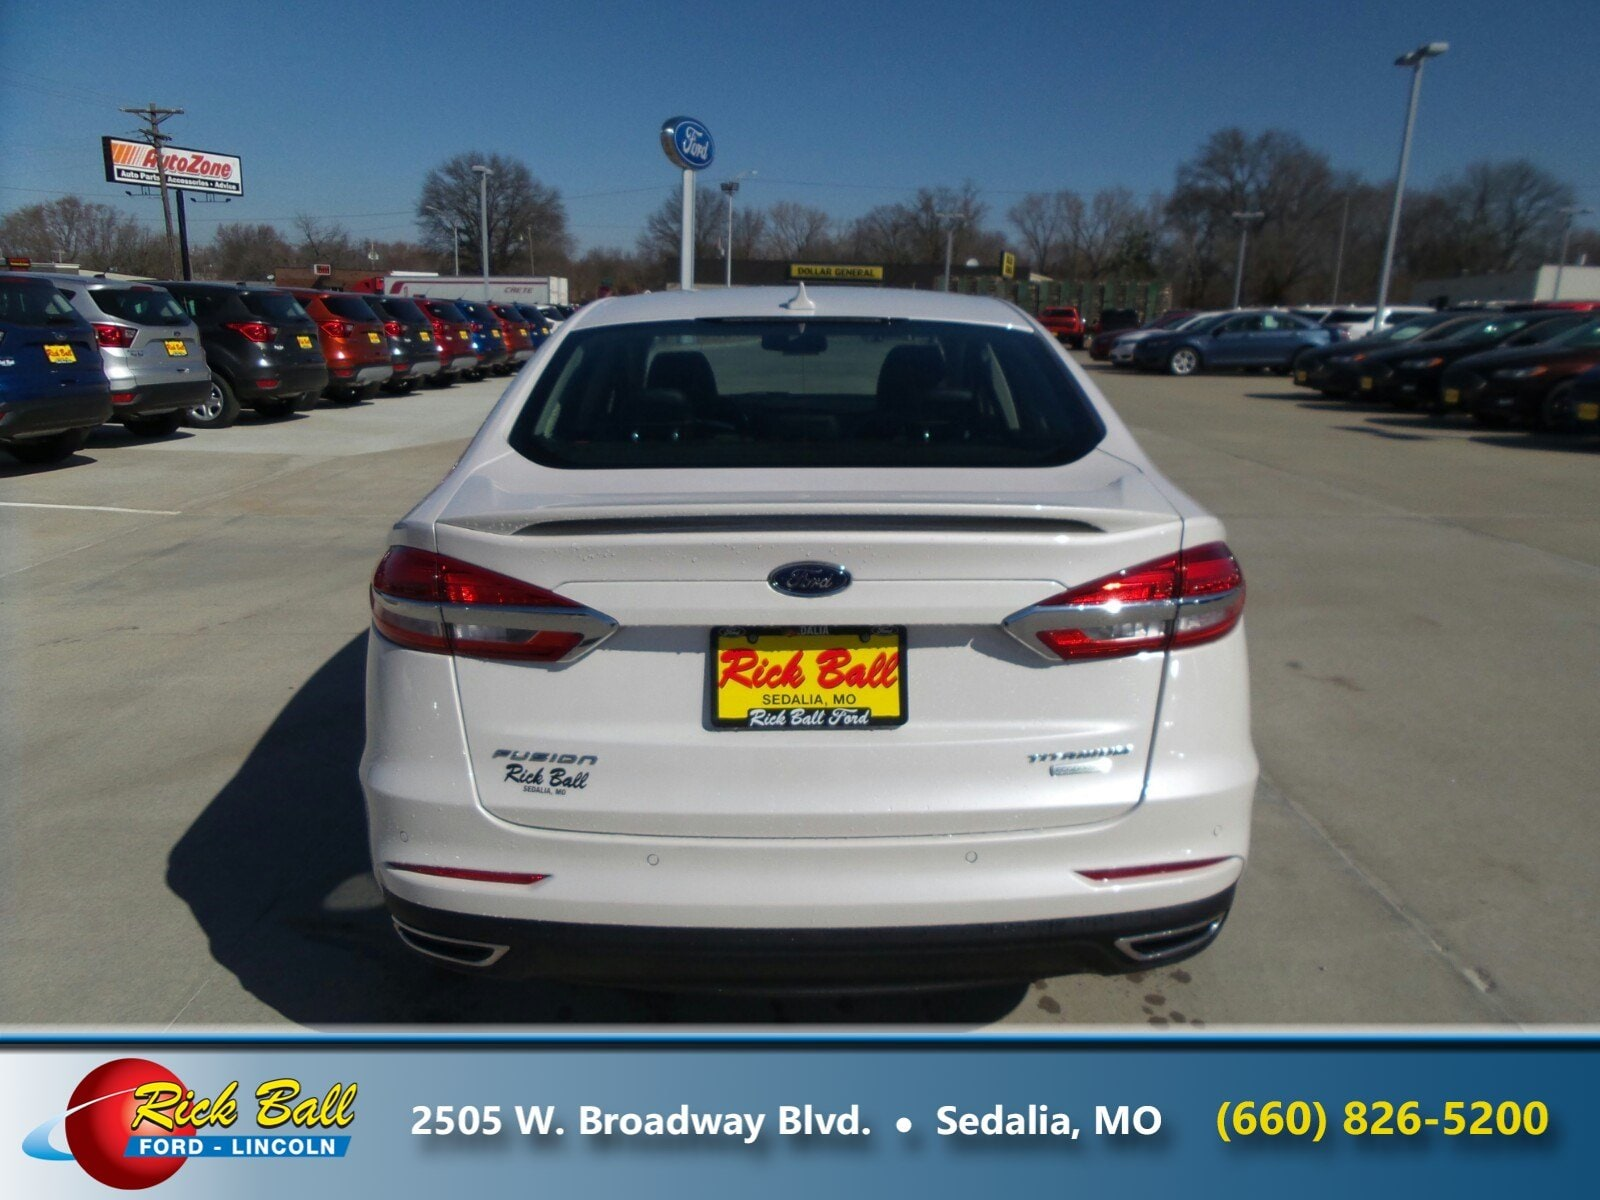 Rick Ball Ford >> New 2019 Ford Fusion For Sale At Rick Ball Ford Lincoln